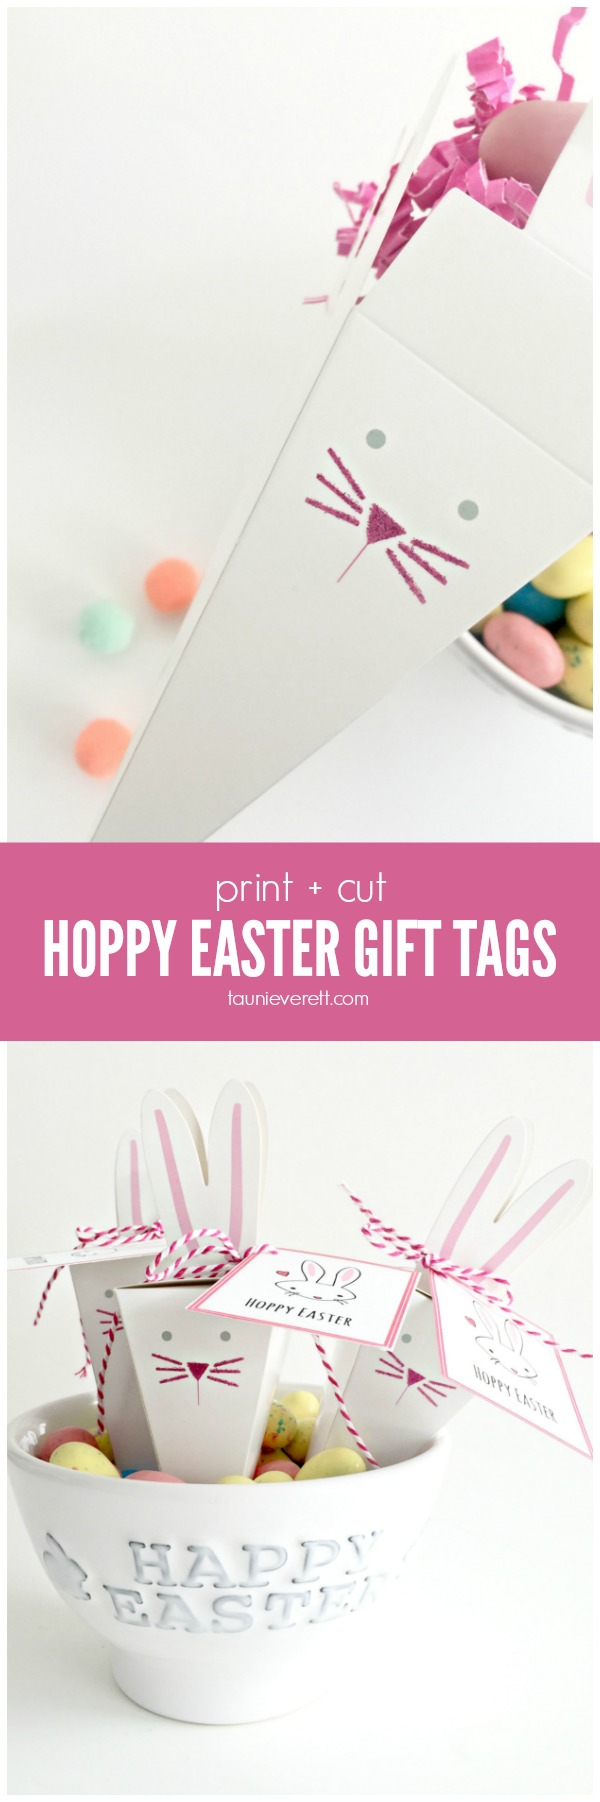 Print cut hoppy easter gift tags tauni co download these free print cut hoppy easter gift tags negle Choice Image